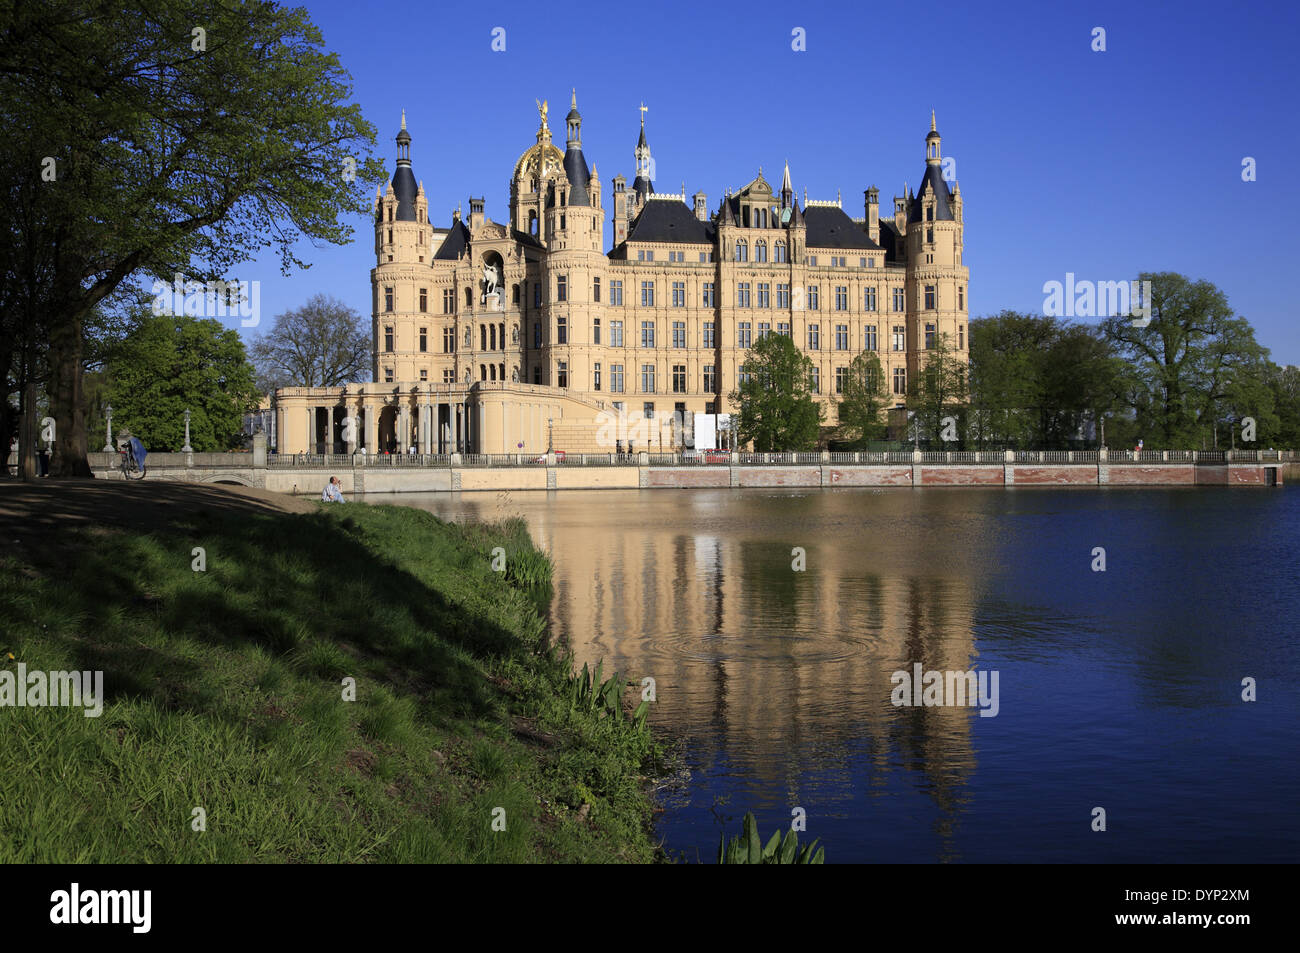 Schwerin castle, Mecklenburg Western Pomerania, Germany, Europe - Stock Image